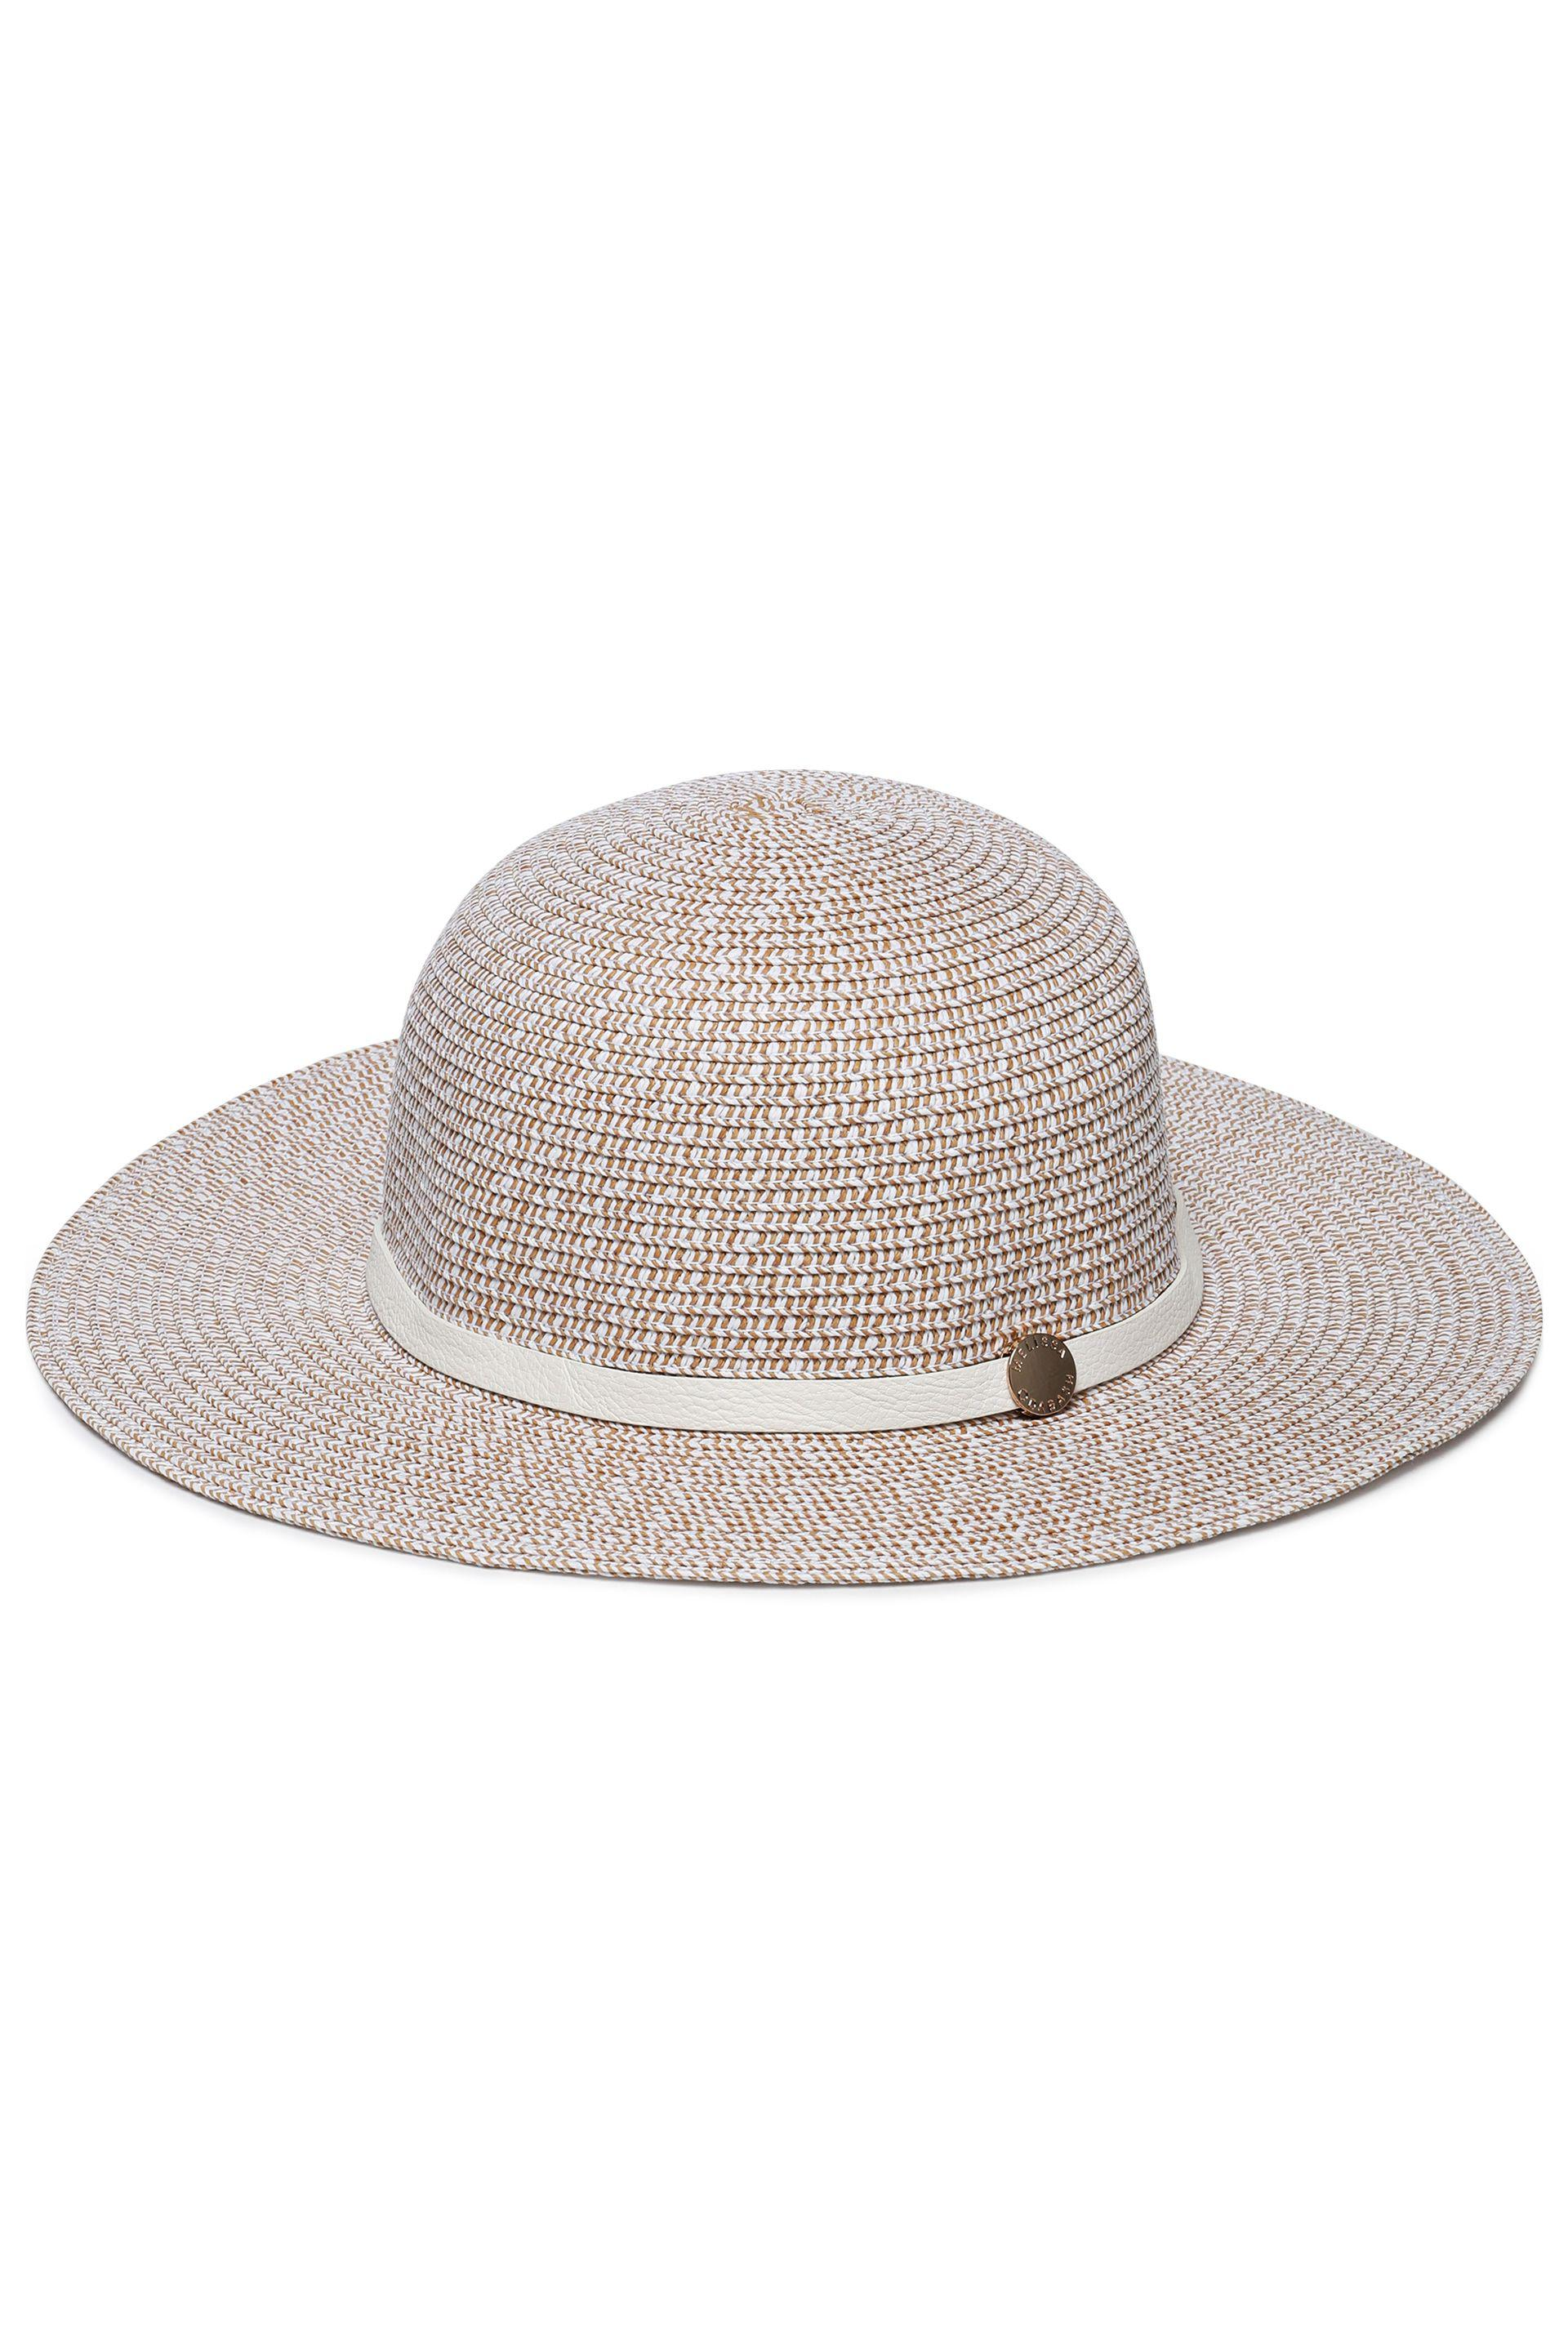 Melissa Odabash Woman Colette Leather-trimmed Straw Sunhat Taupe - Lyst b6361c3f7f2